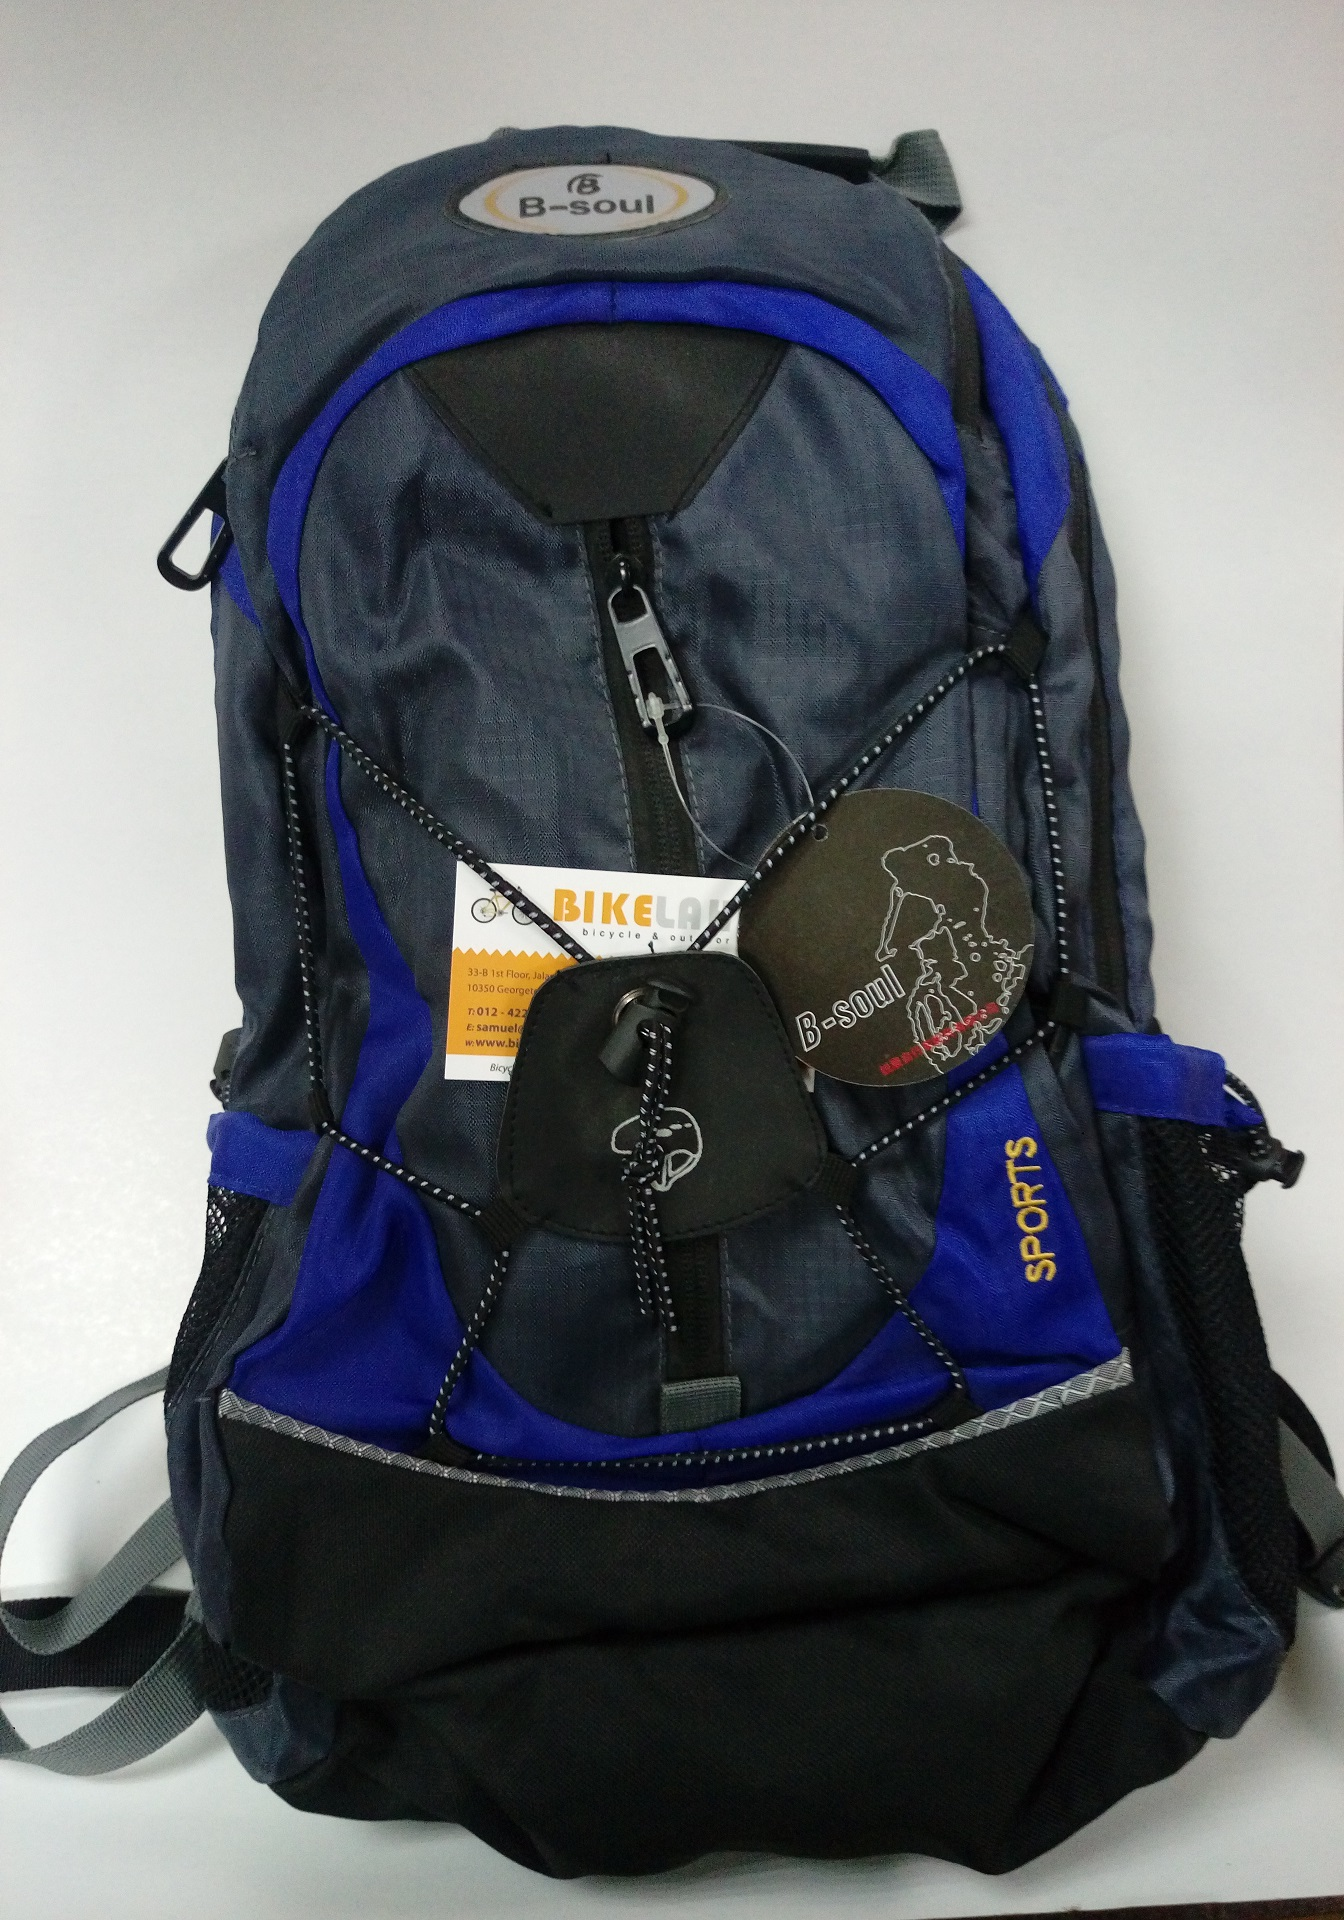 B-Soul Backpack